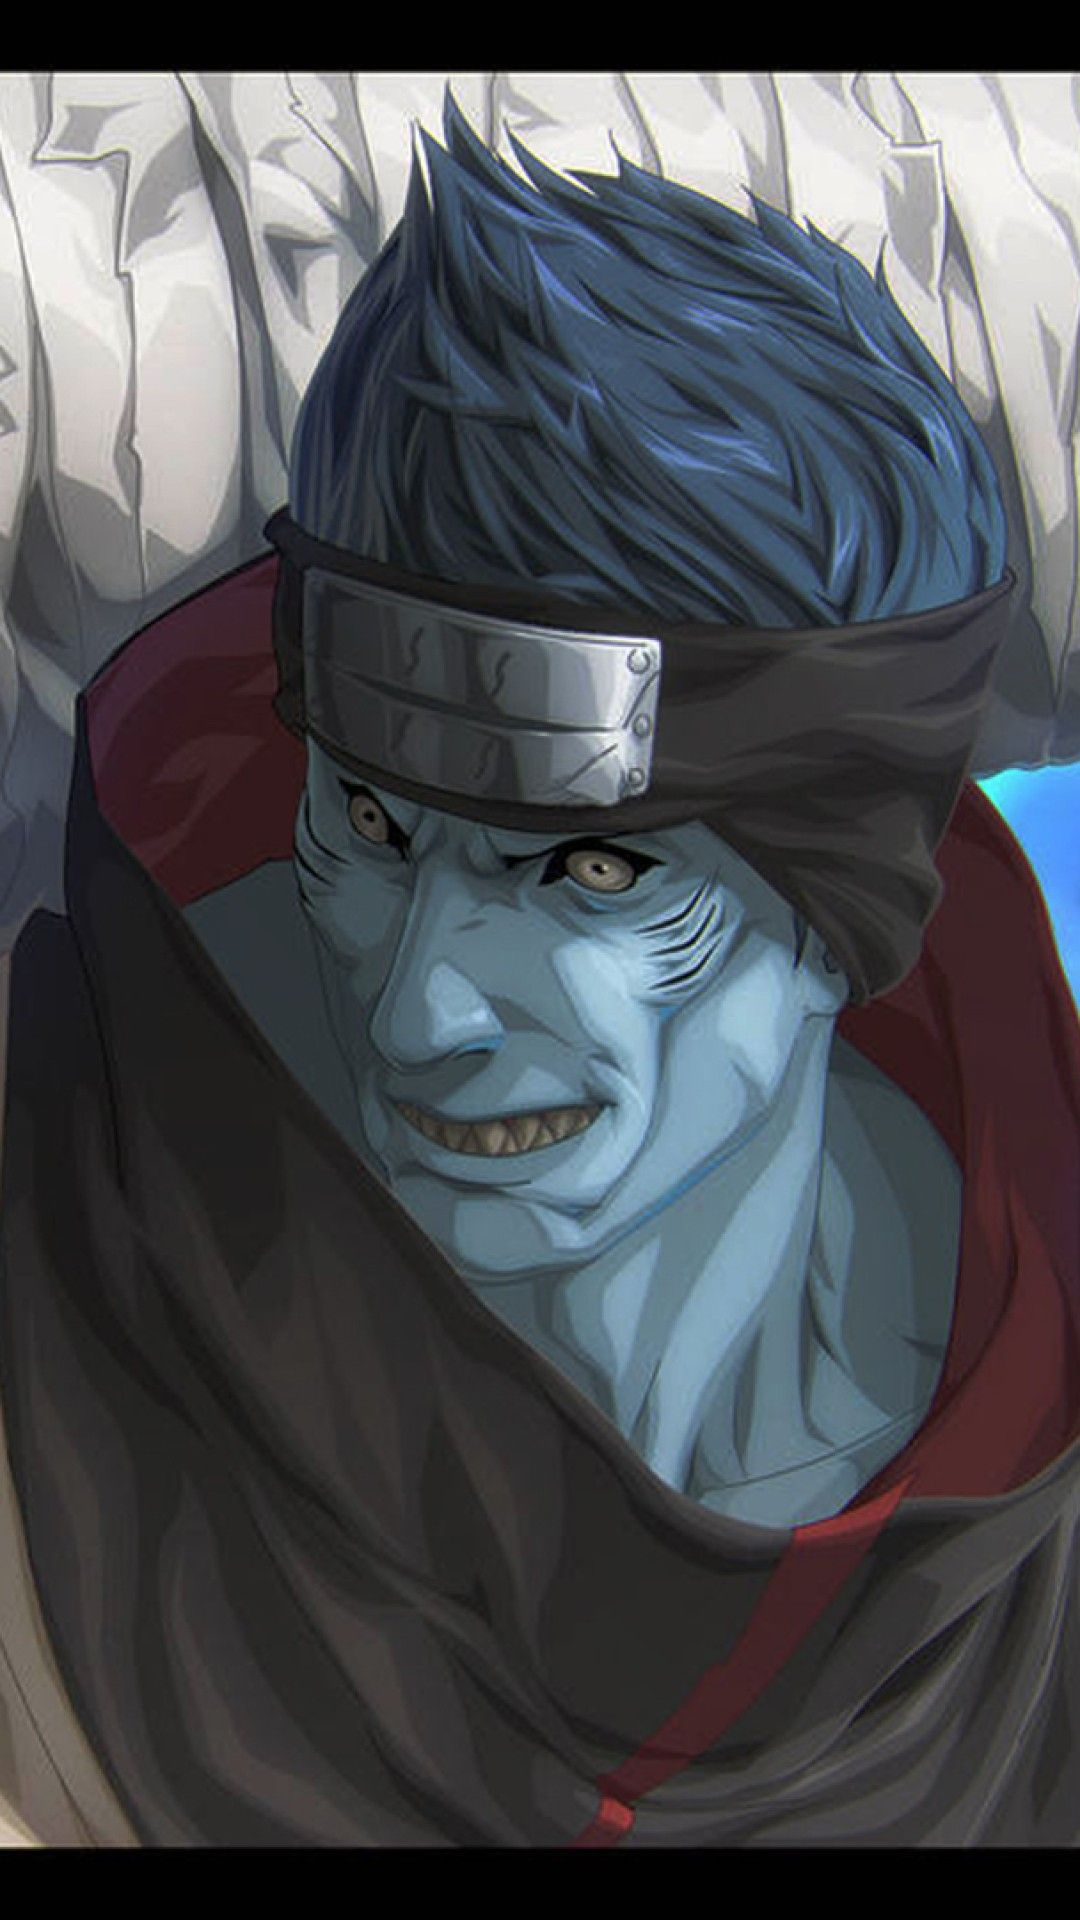 Wallpaper Phone Kisame Full HD Olhos de anime, Fotos